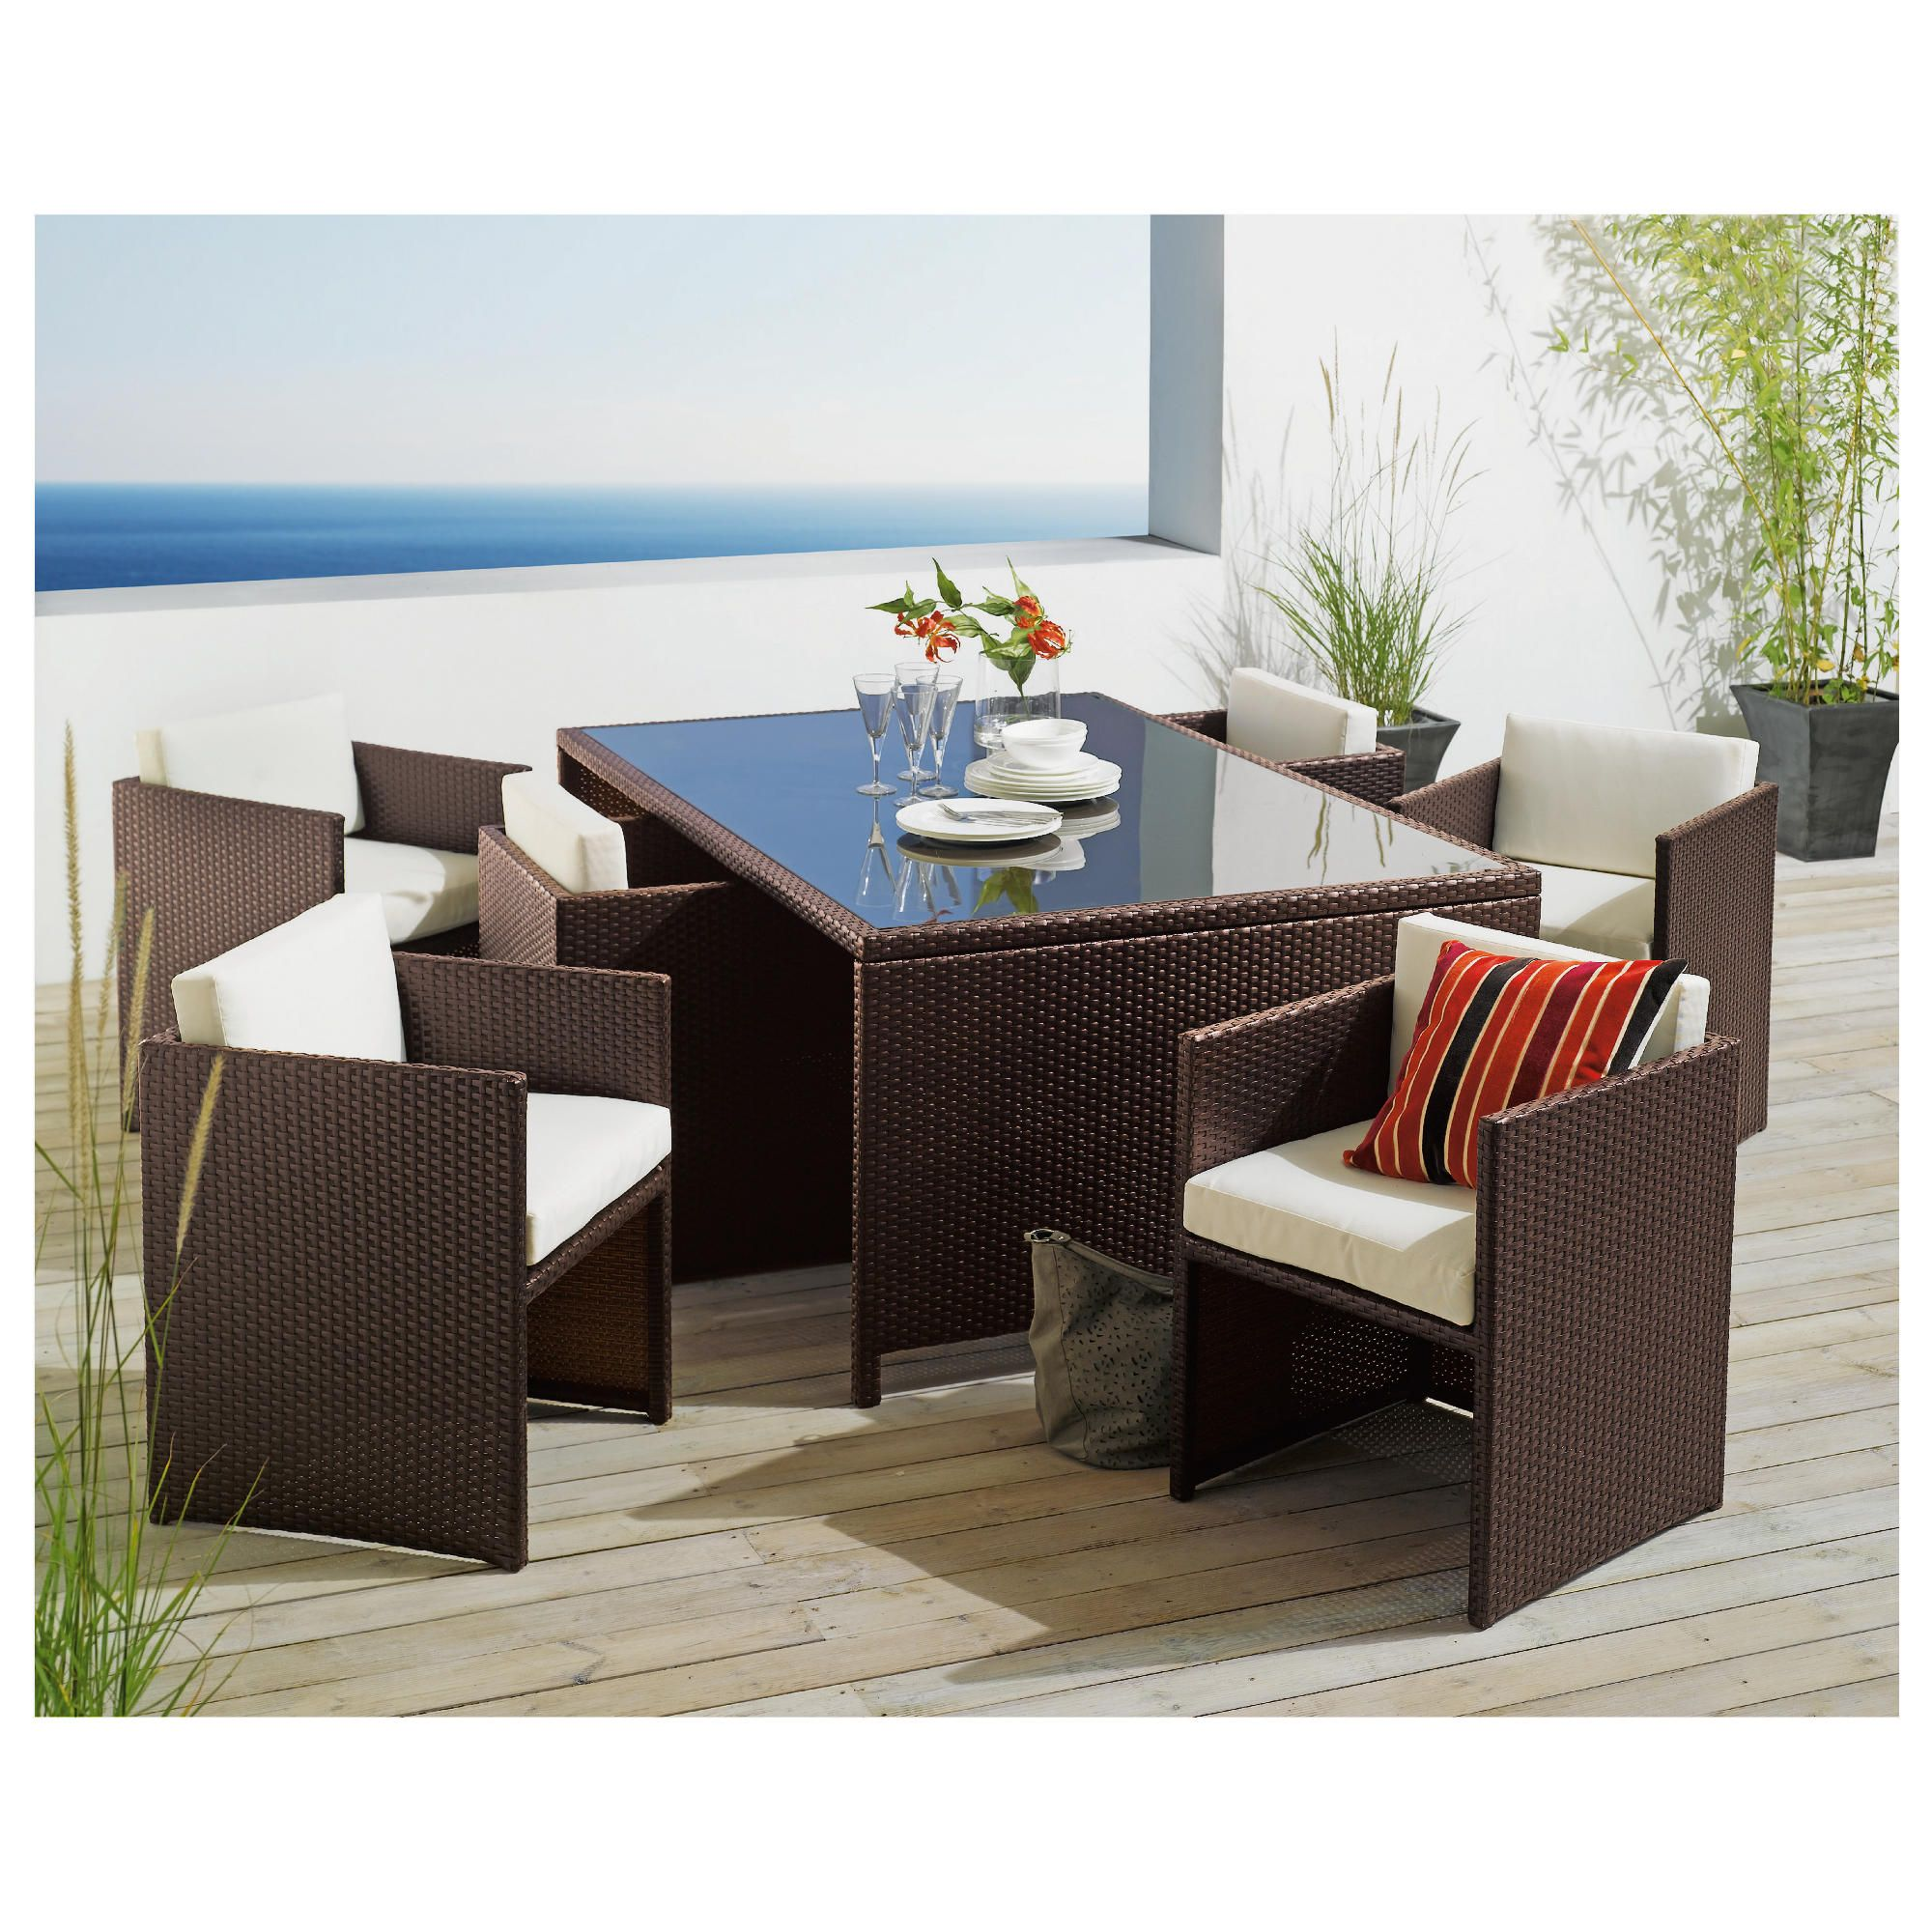 Cuba 6 Seater Hideaway Set - Brown at Tesco Direct